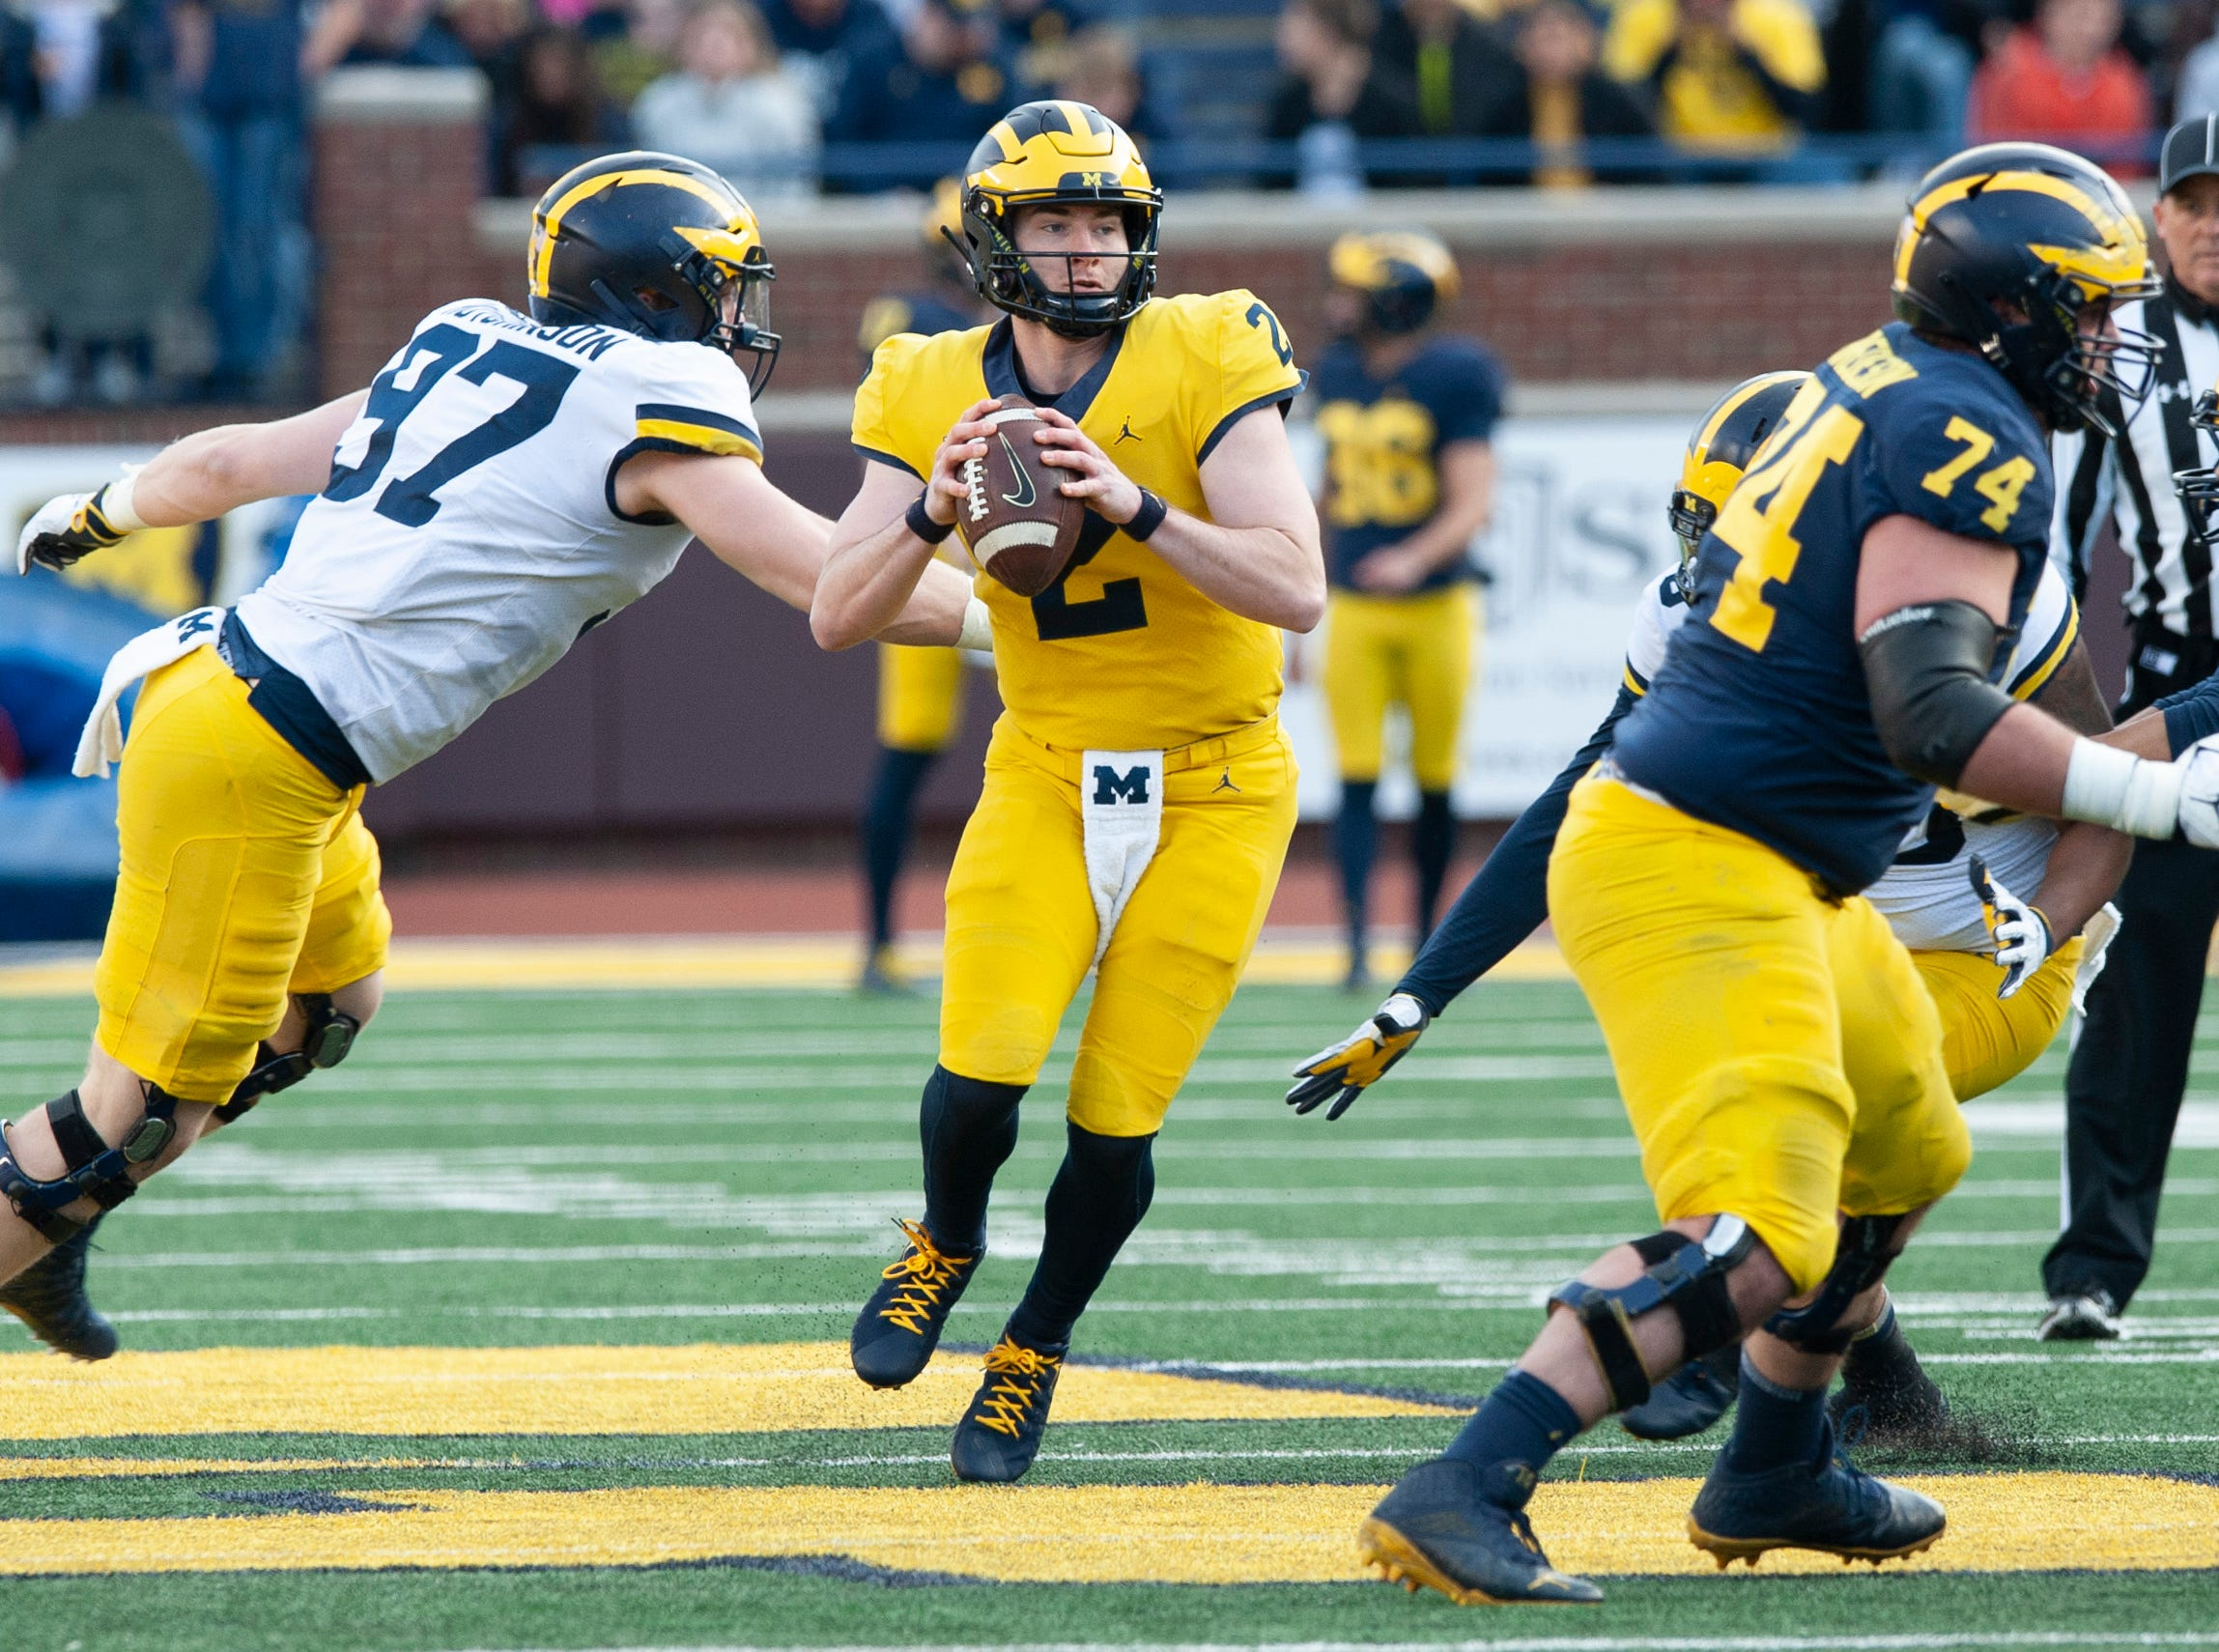 Michigan QB Shea Patterson steps up in the pocket and away from rushing DL Aidan Hutchinson (97).